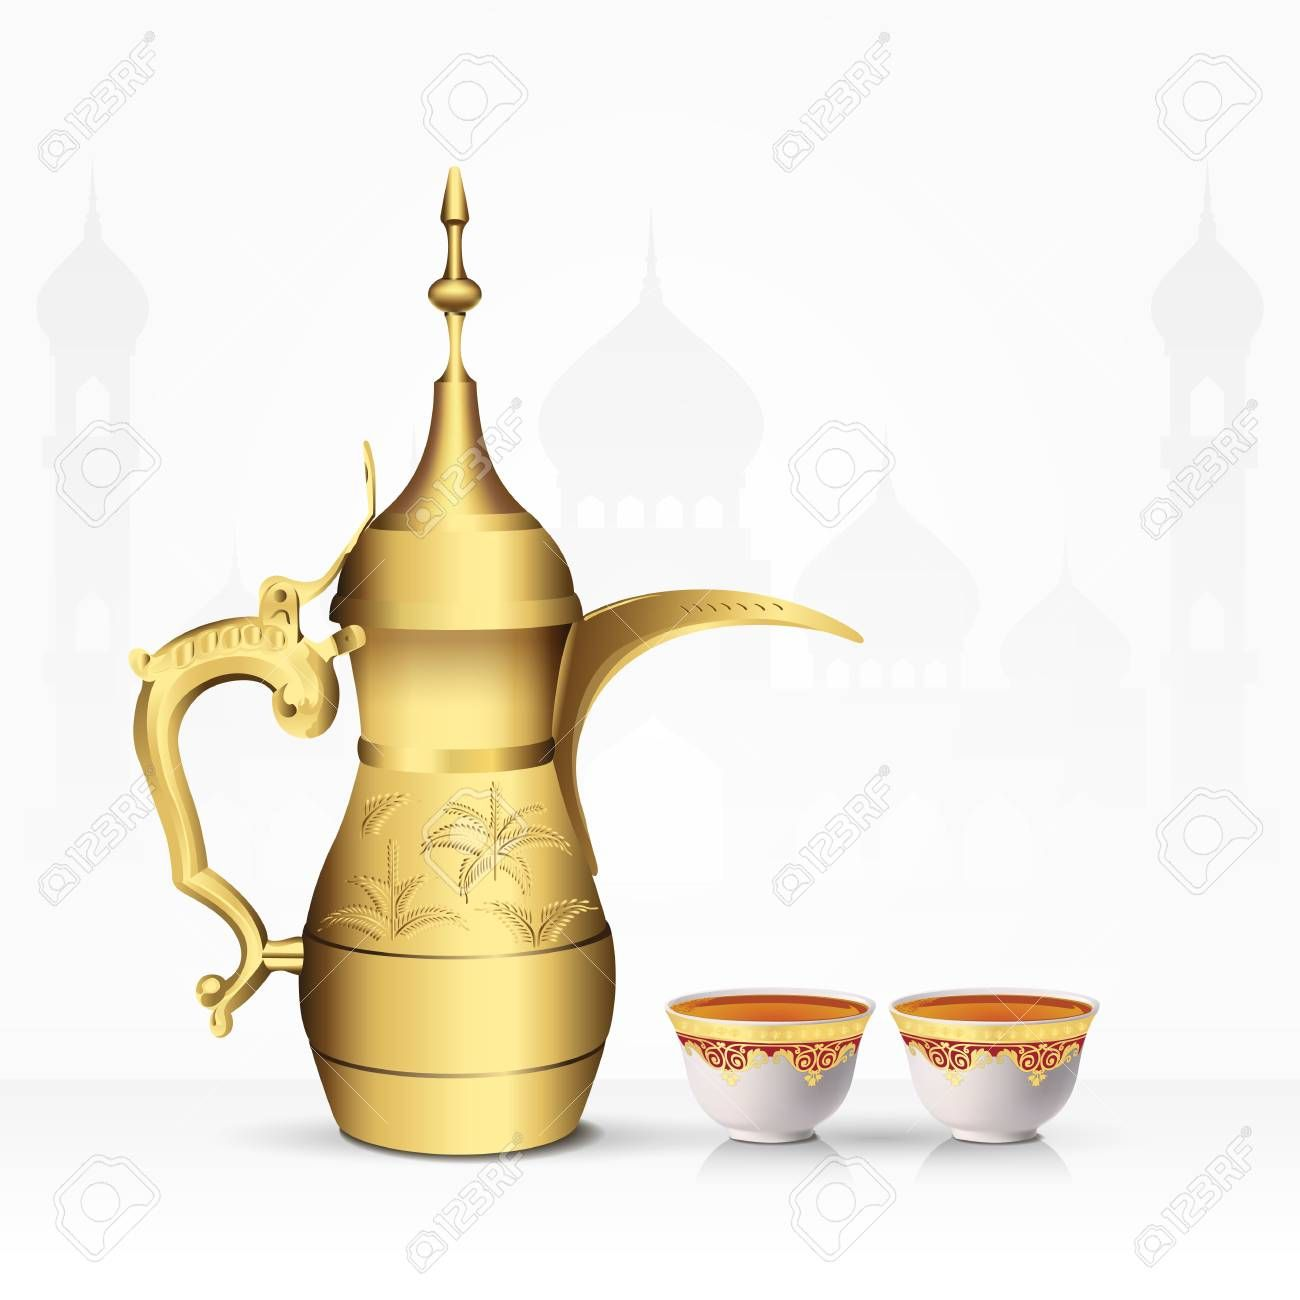 Vintage Arabic Tea Pot And Tea Cup Isolated On White Background